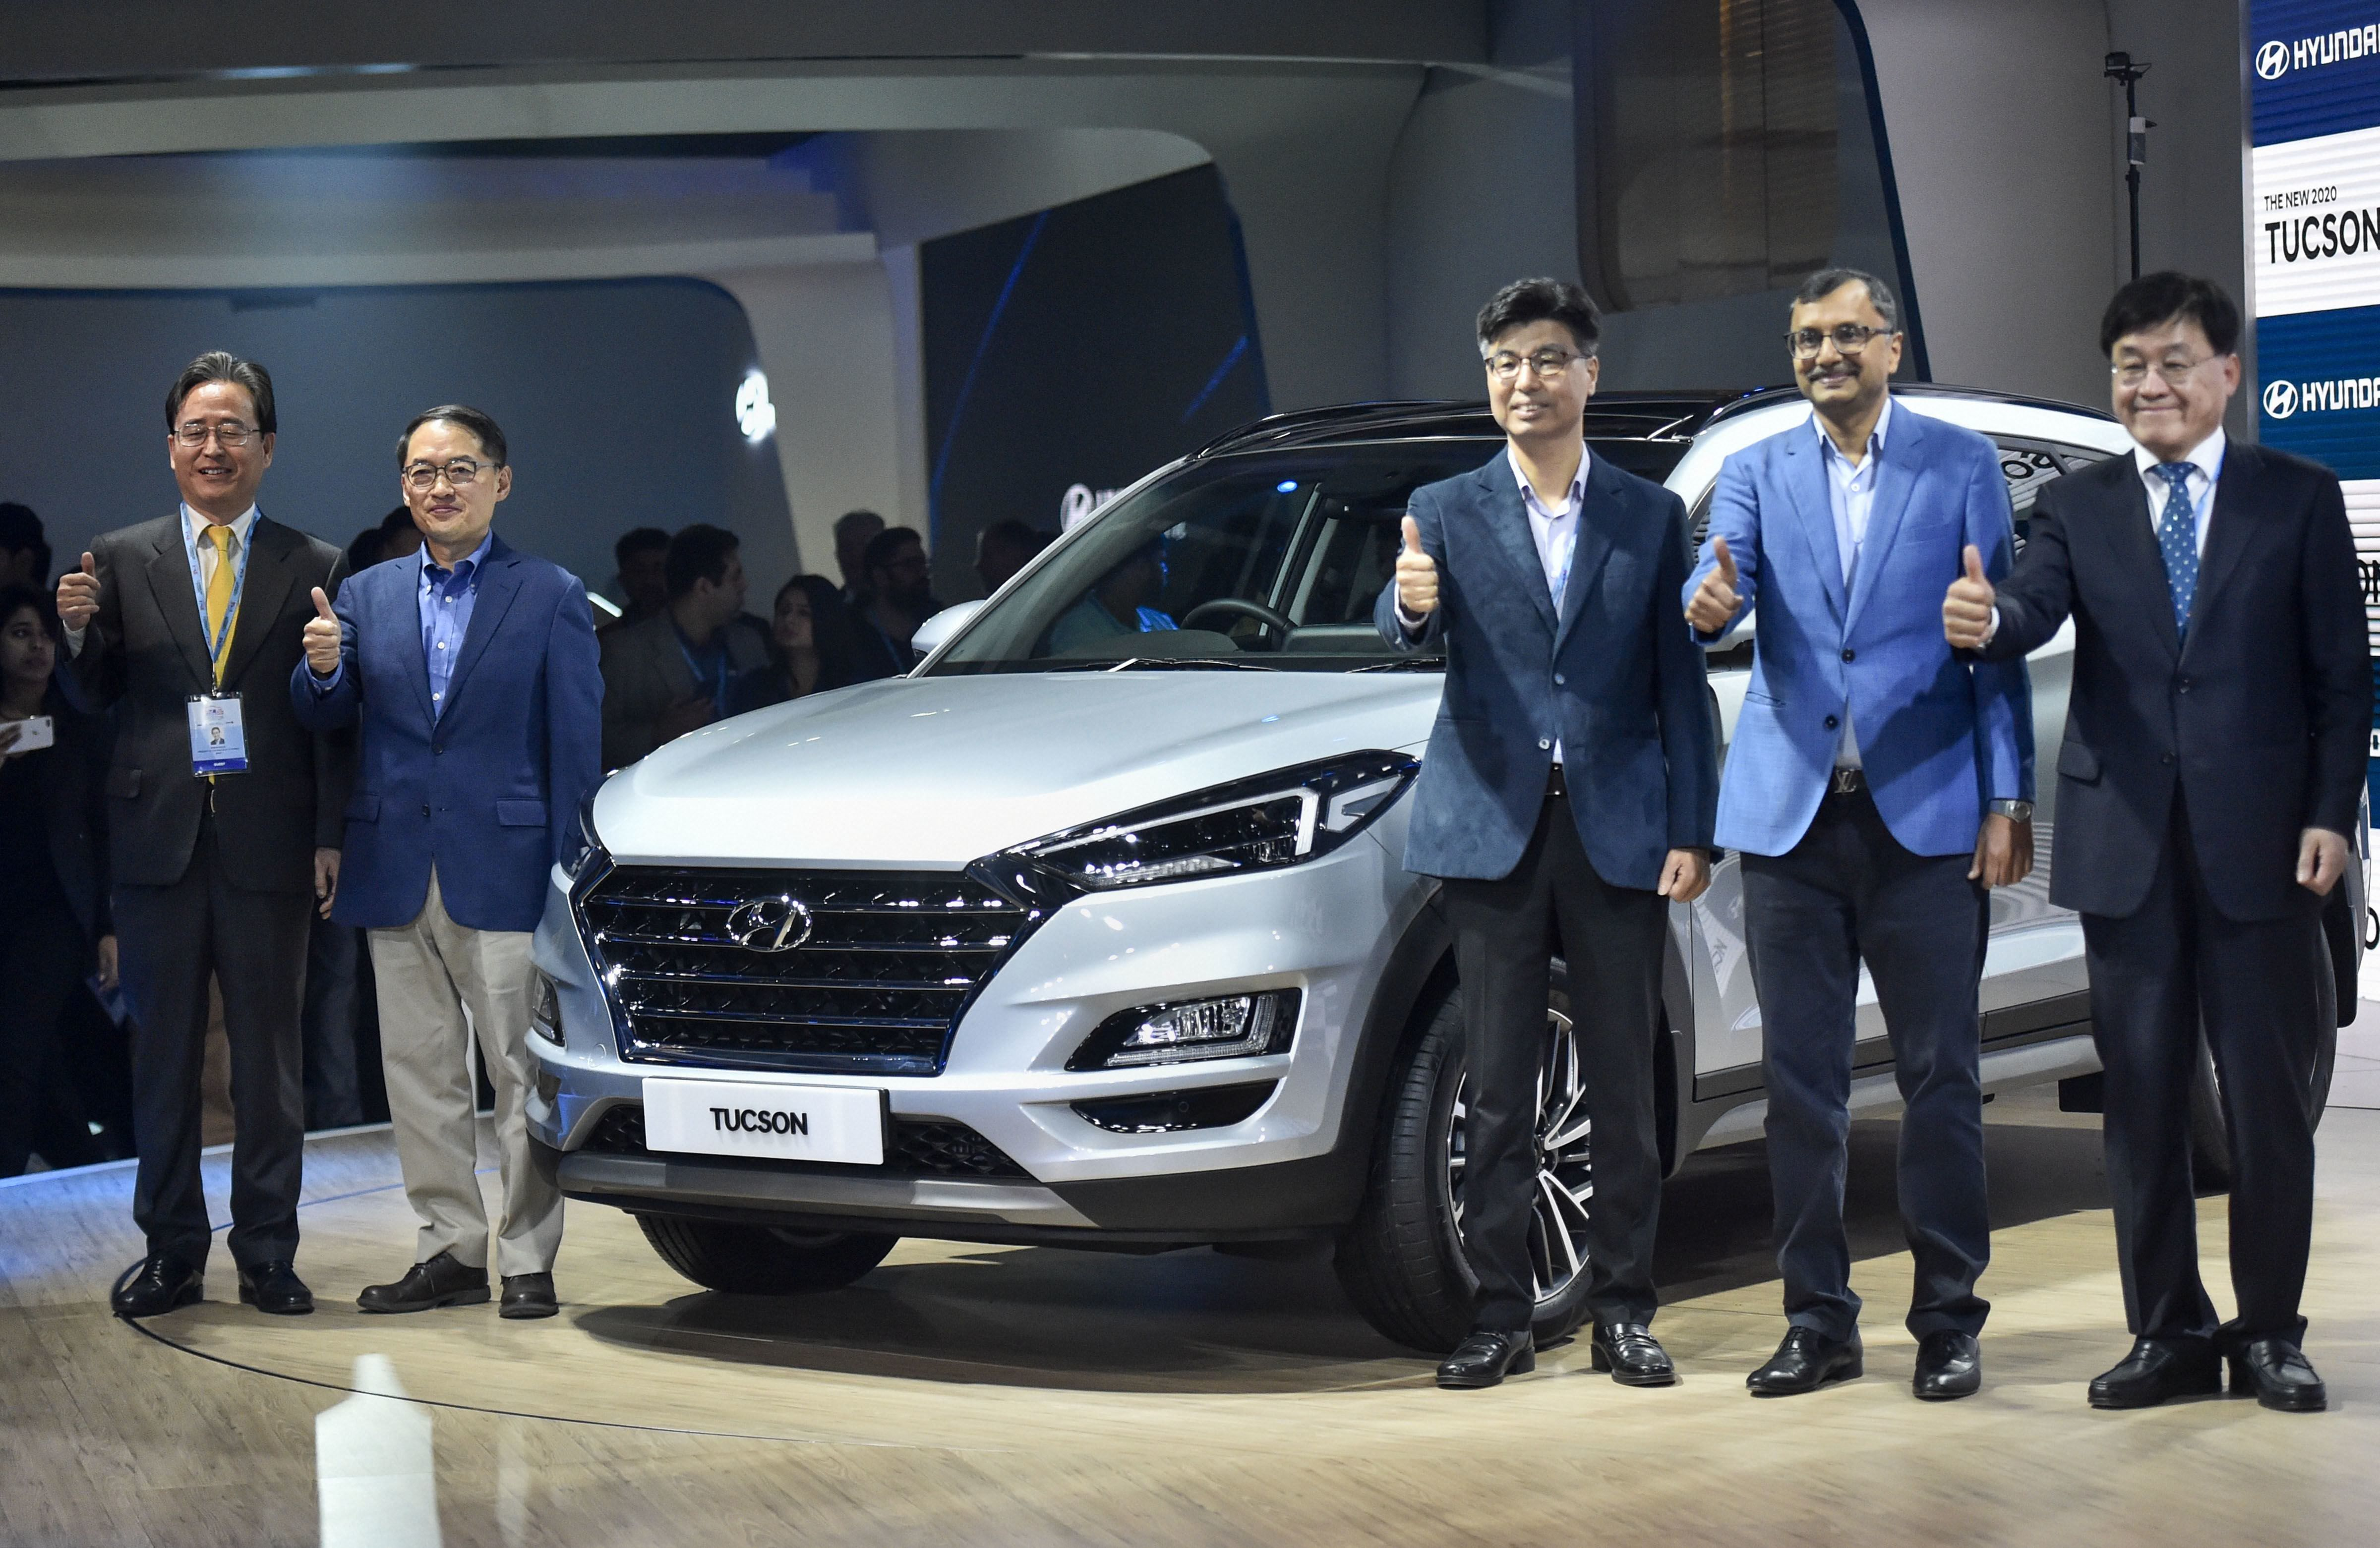 Managing Director and CEO of Hyundai Motors India Ltd, SS Kim (second from left) poses with other officials during the launch of the Hyundai Tucson at Auto Expo 2020 on Wednesday. The South Korean auto major has sold over 6.5 million units of Tucson in markets like the US, Europe, South Korea and China till date. (PTI)